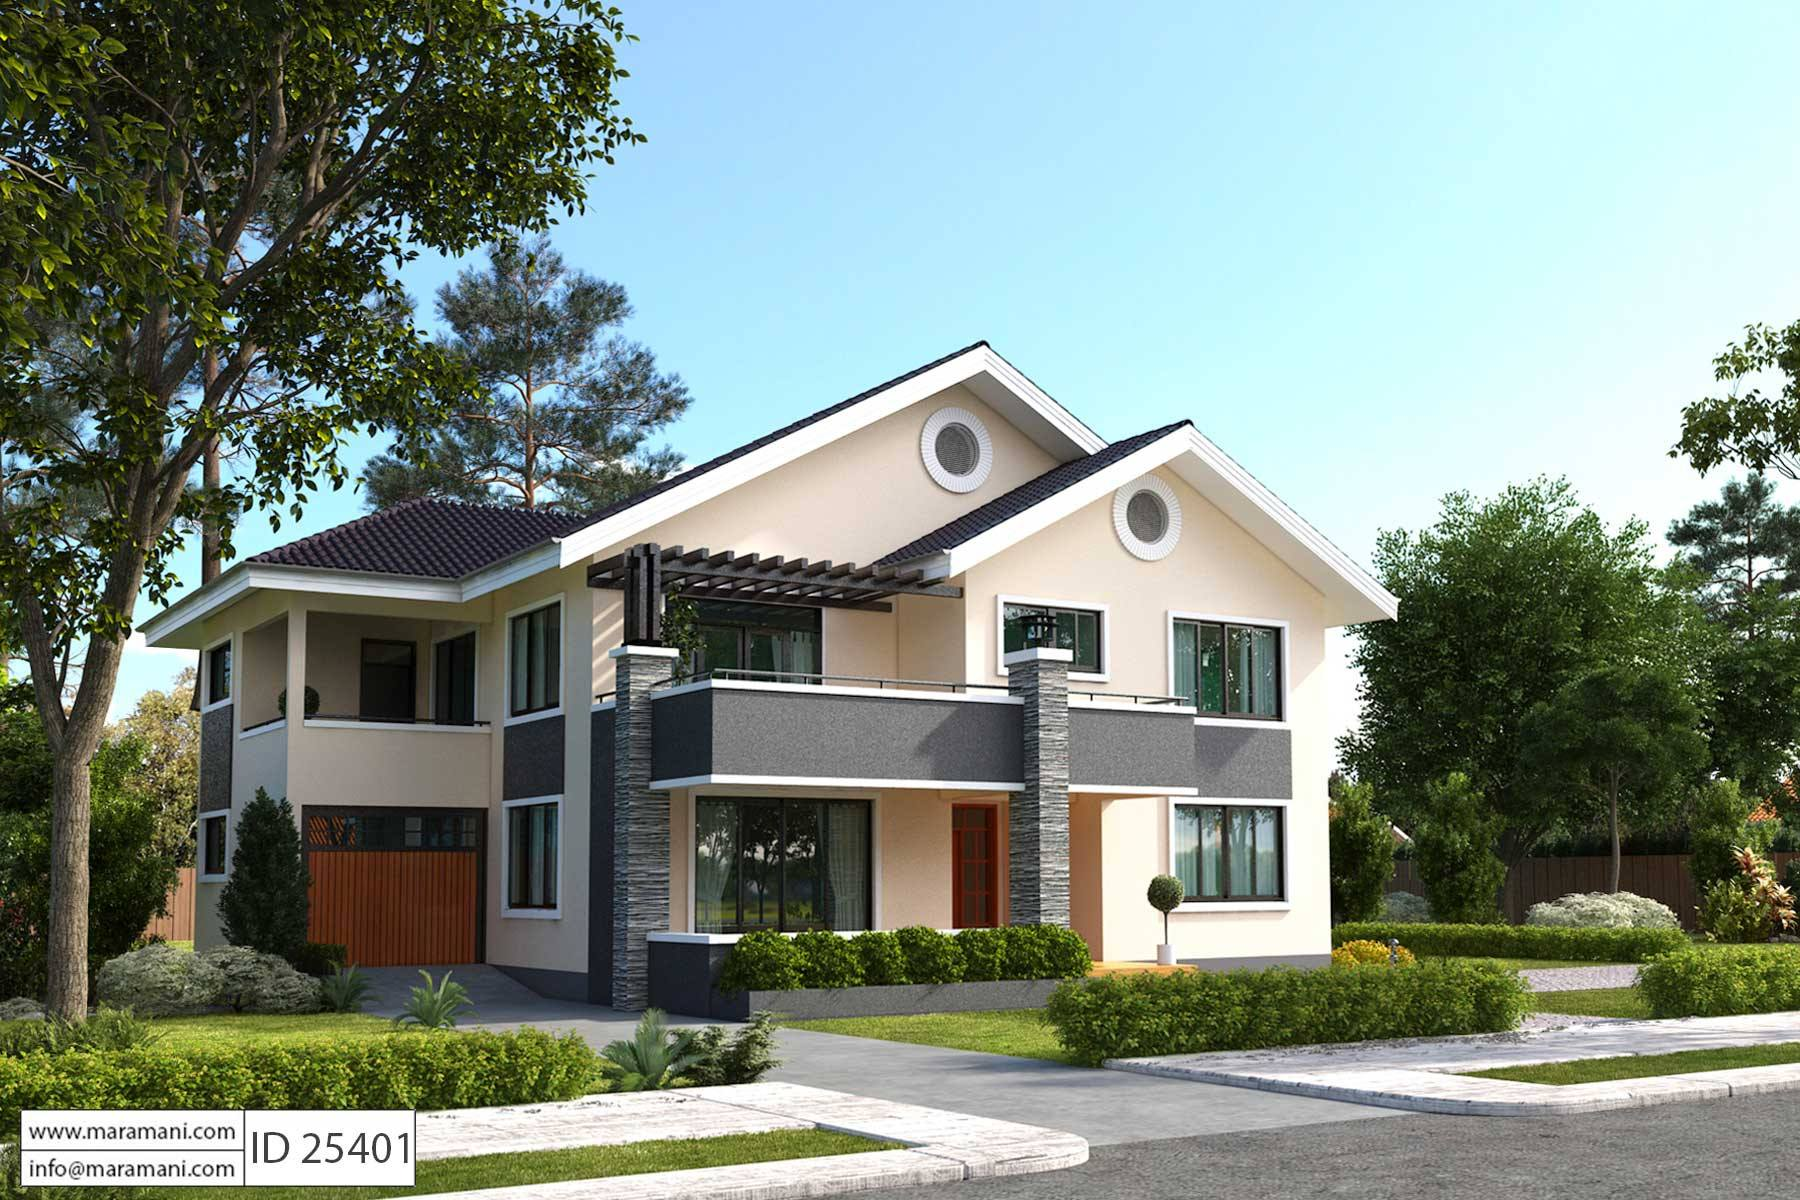 5 bedroom house plan id 25401 floor plans by maramani for Looking for house plans